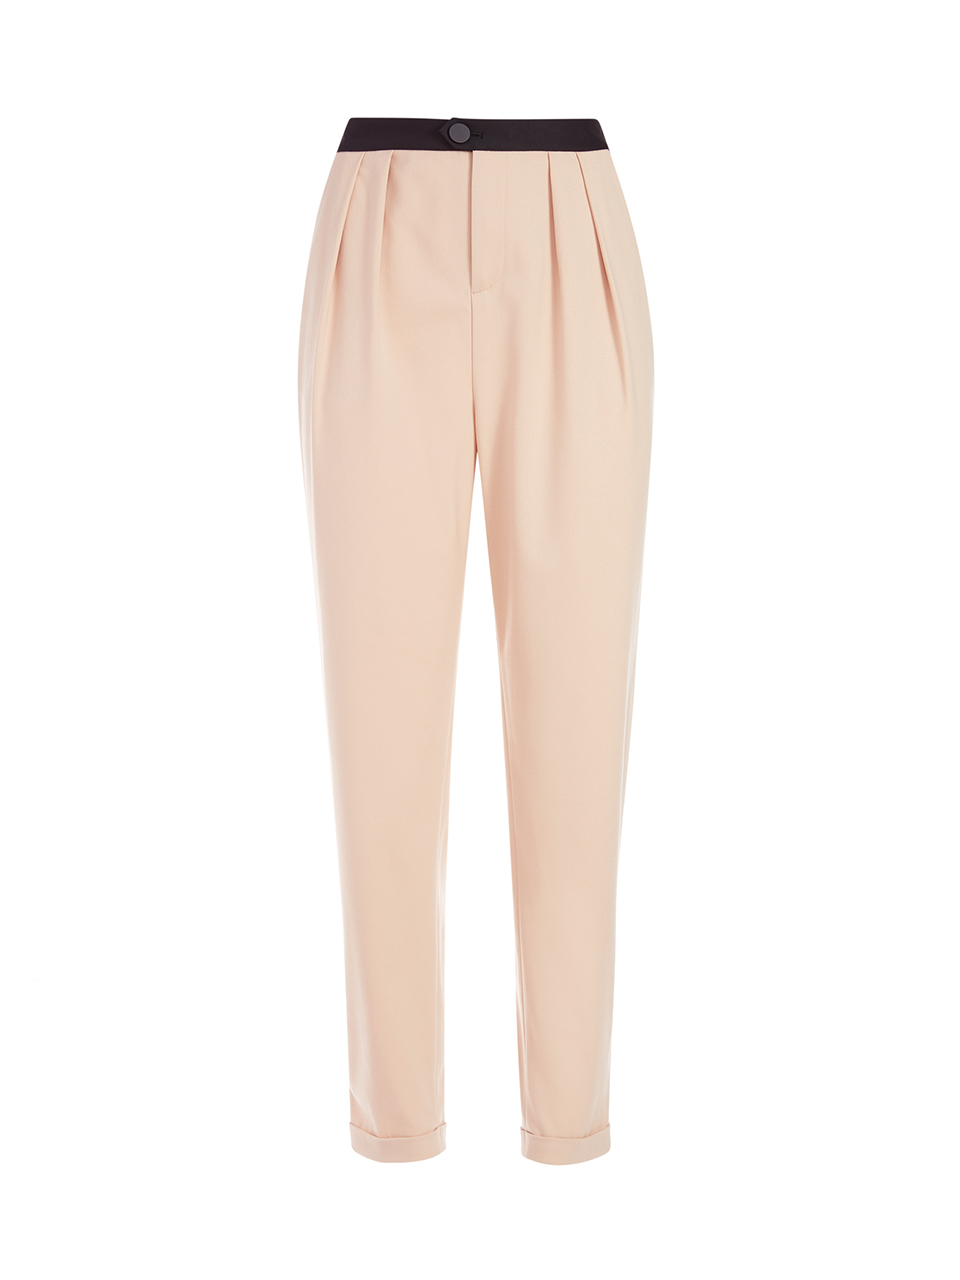 Alice + Olivia Roy Front Pleat Pant in Sepia Product Shot